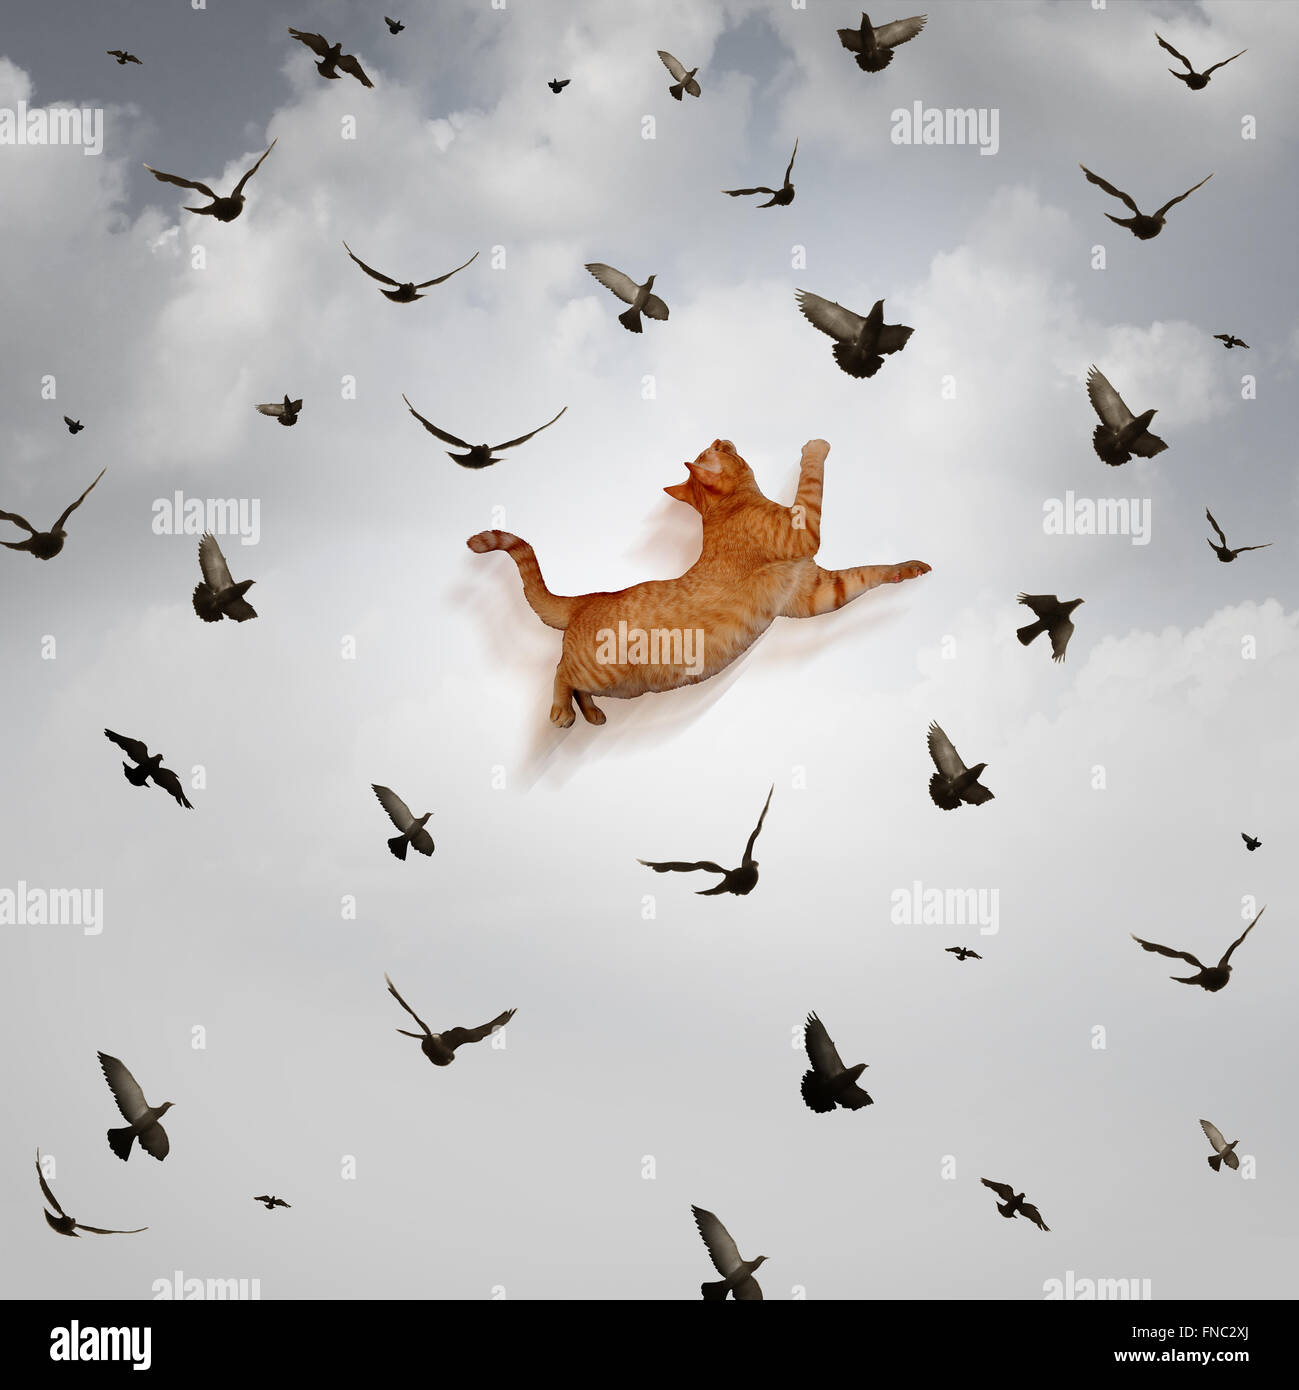 Seize the opportunity concept as a leaping cat jumping high up in the sky to catch flying birds as a business skill - Stock Image